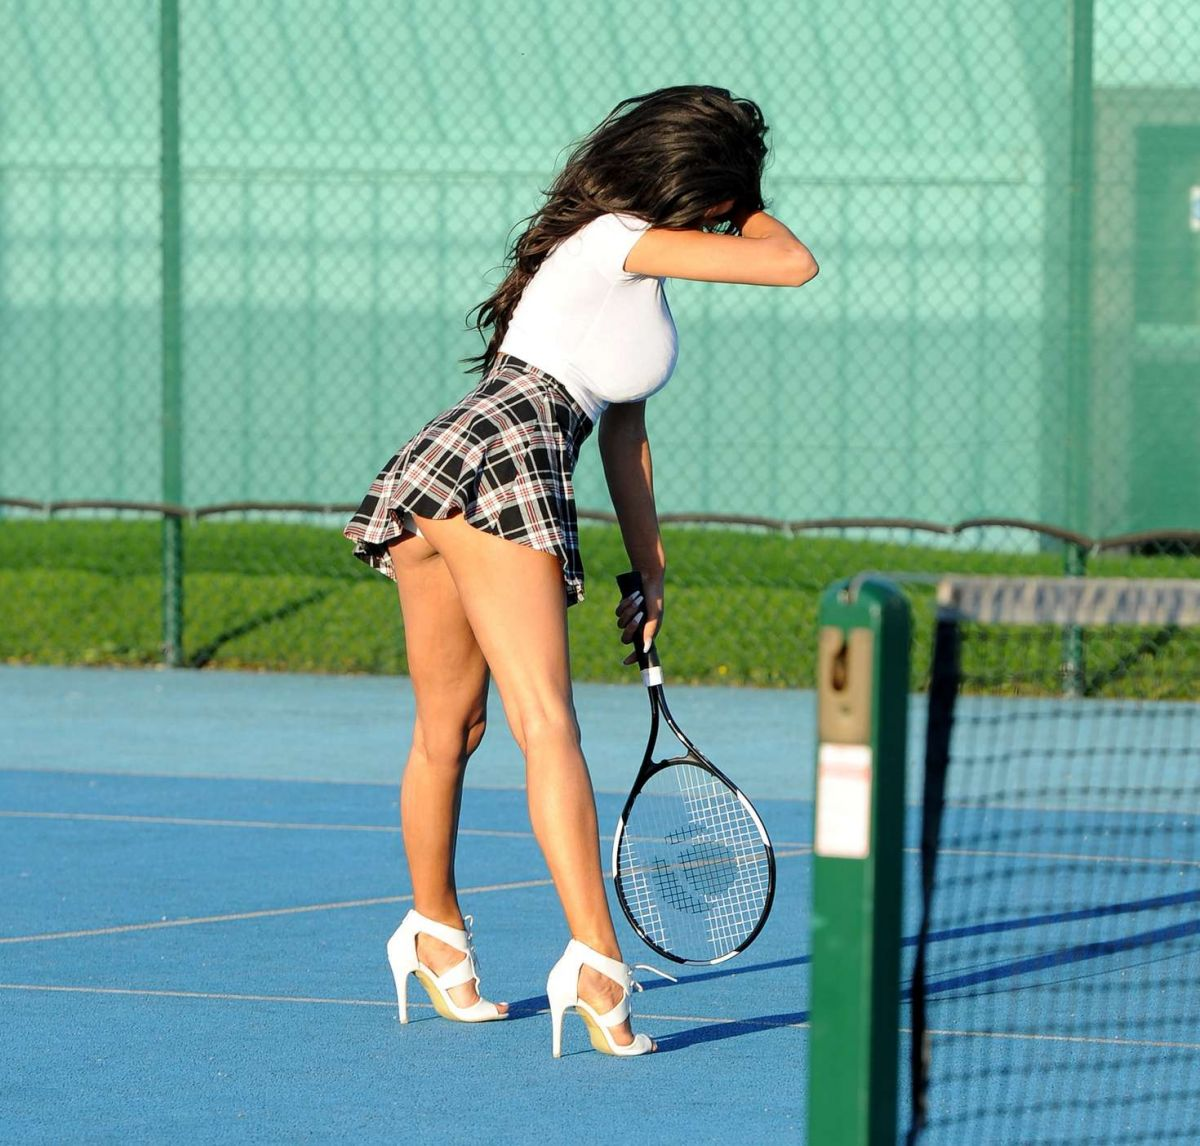 CHLOE KHAN Playing Tennis at a Court in Manchester 10/15/2016